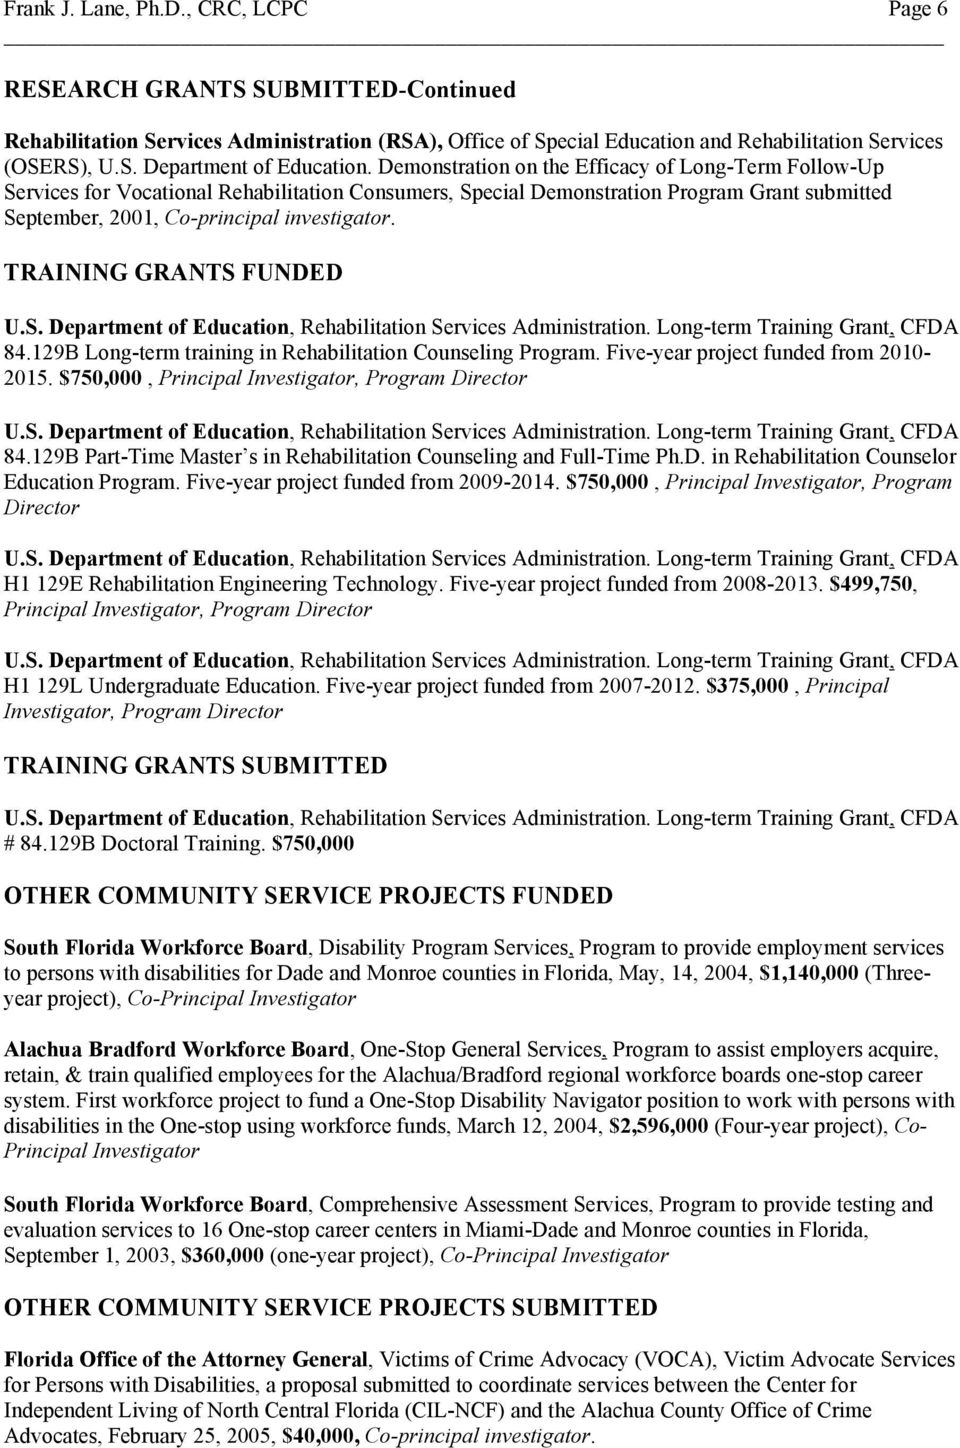 TRAINING GRANTS FUNDED U.S. Department of Education, Rehabilitation Services Administration. Long-term Training Grant, CFDA 84.129B Long-term training in Rehabilitation Counseling Program.